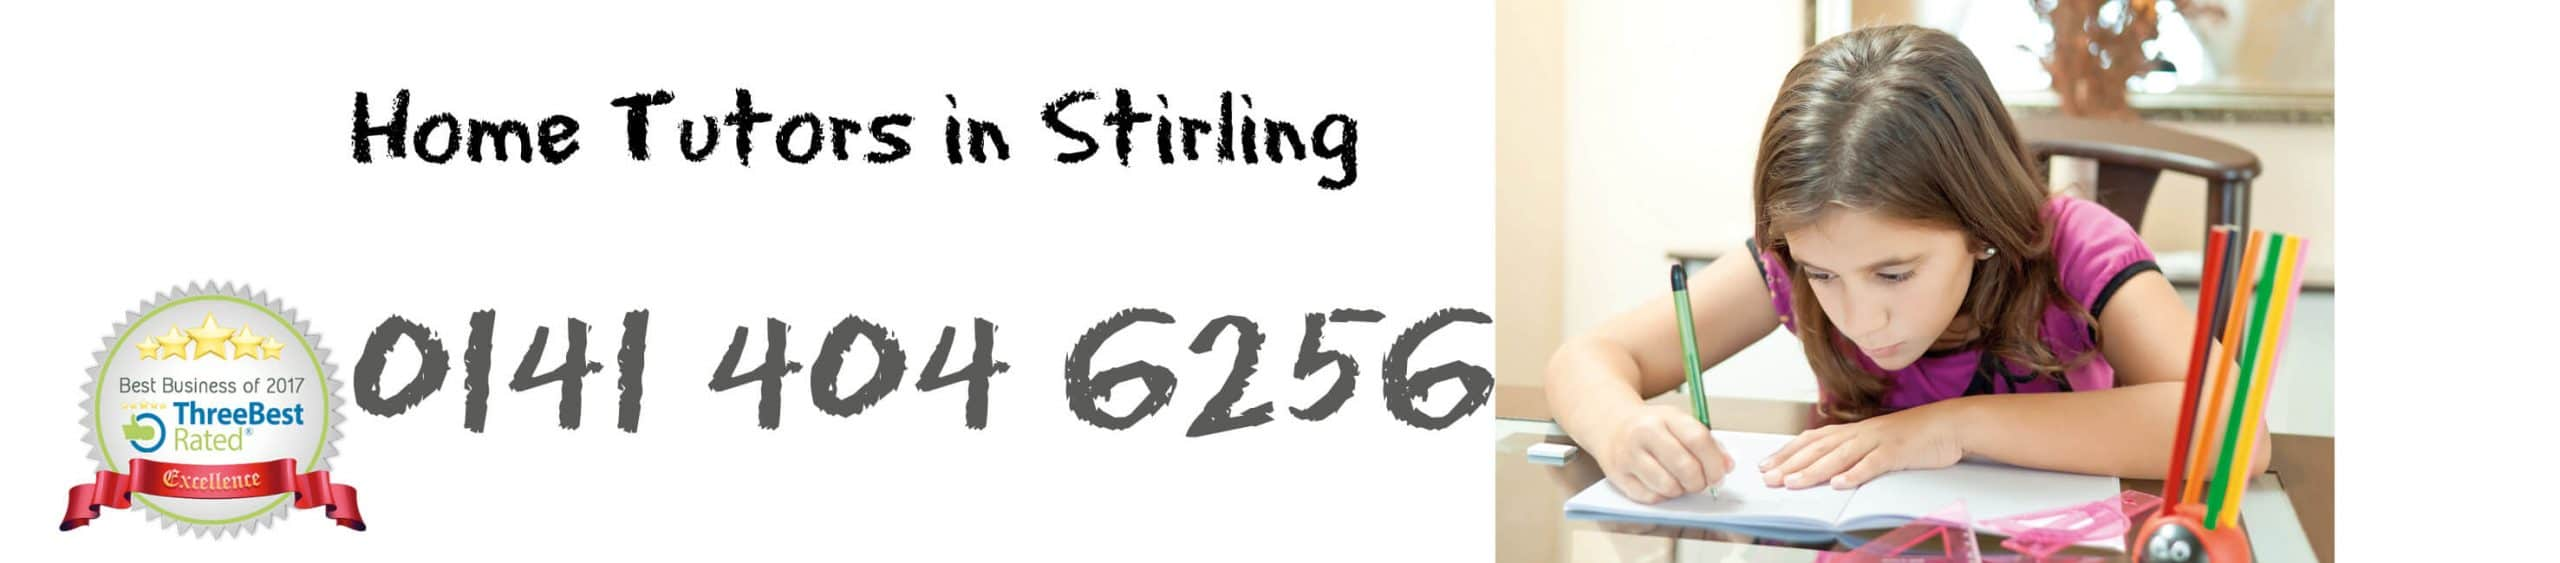 Home Tutors in Stirling